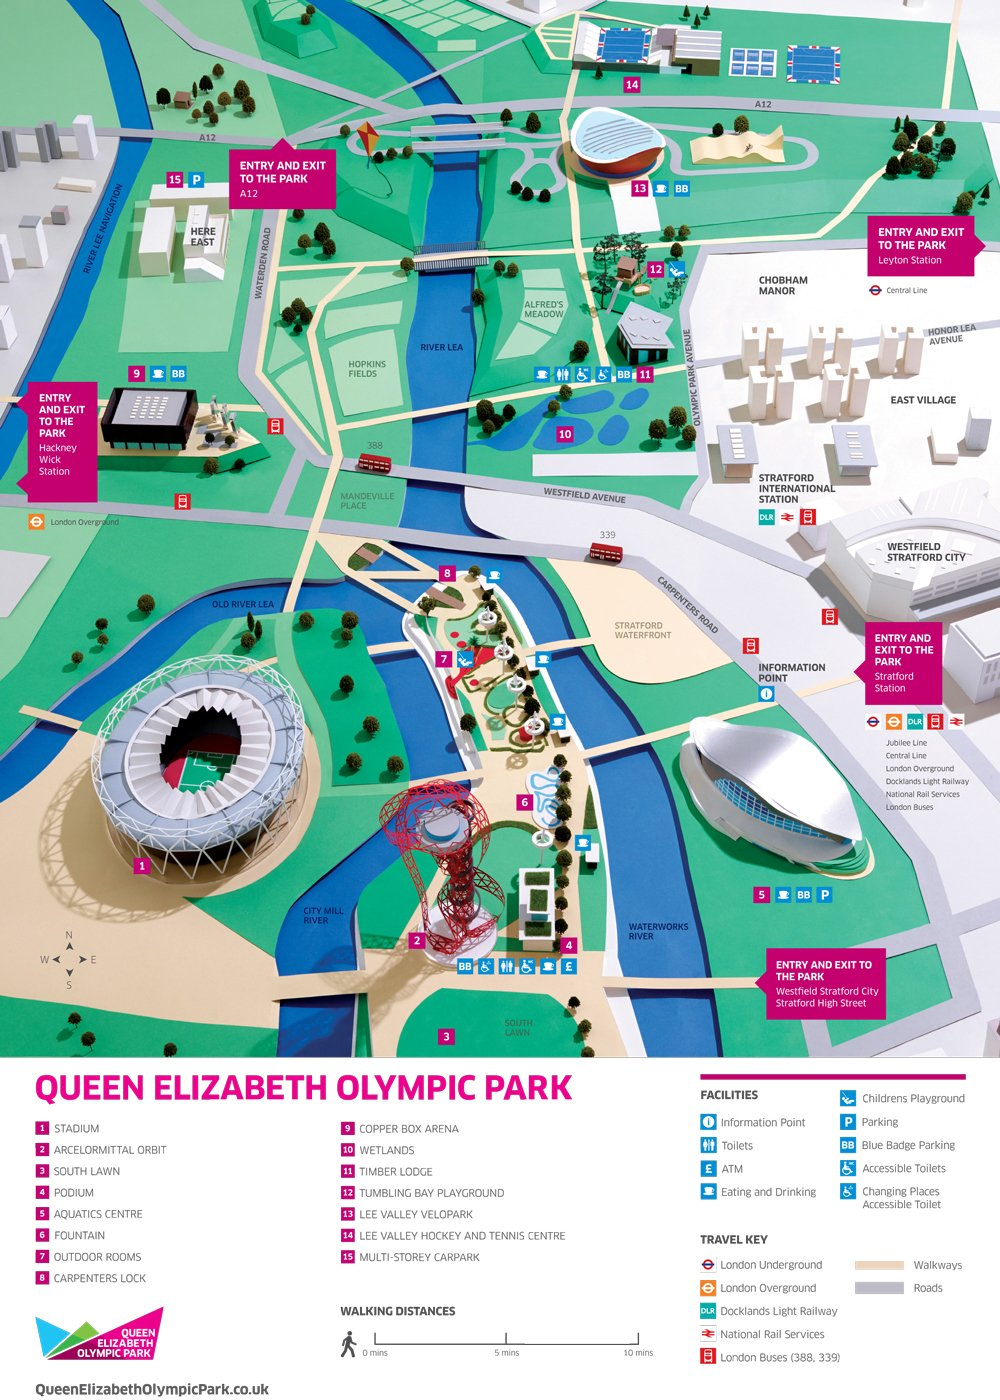 And The Hockey Tennis Centre Promises Well Oh Copper Box Arena Will Host Sporting Cultural Events Aplenty